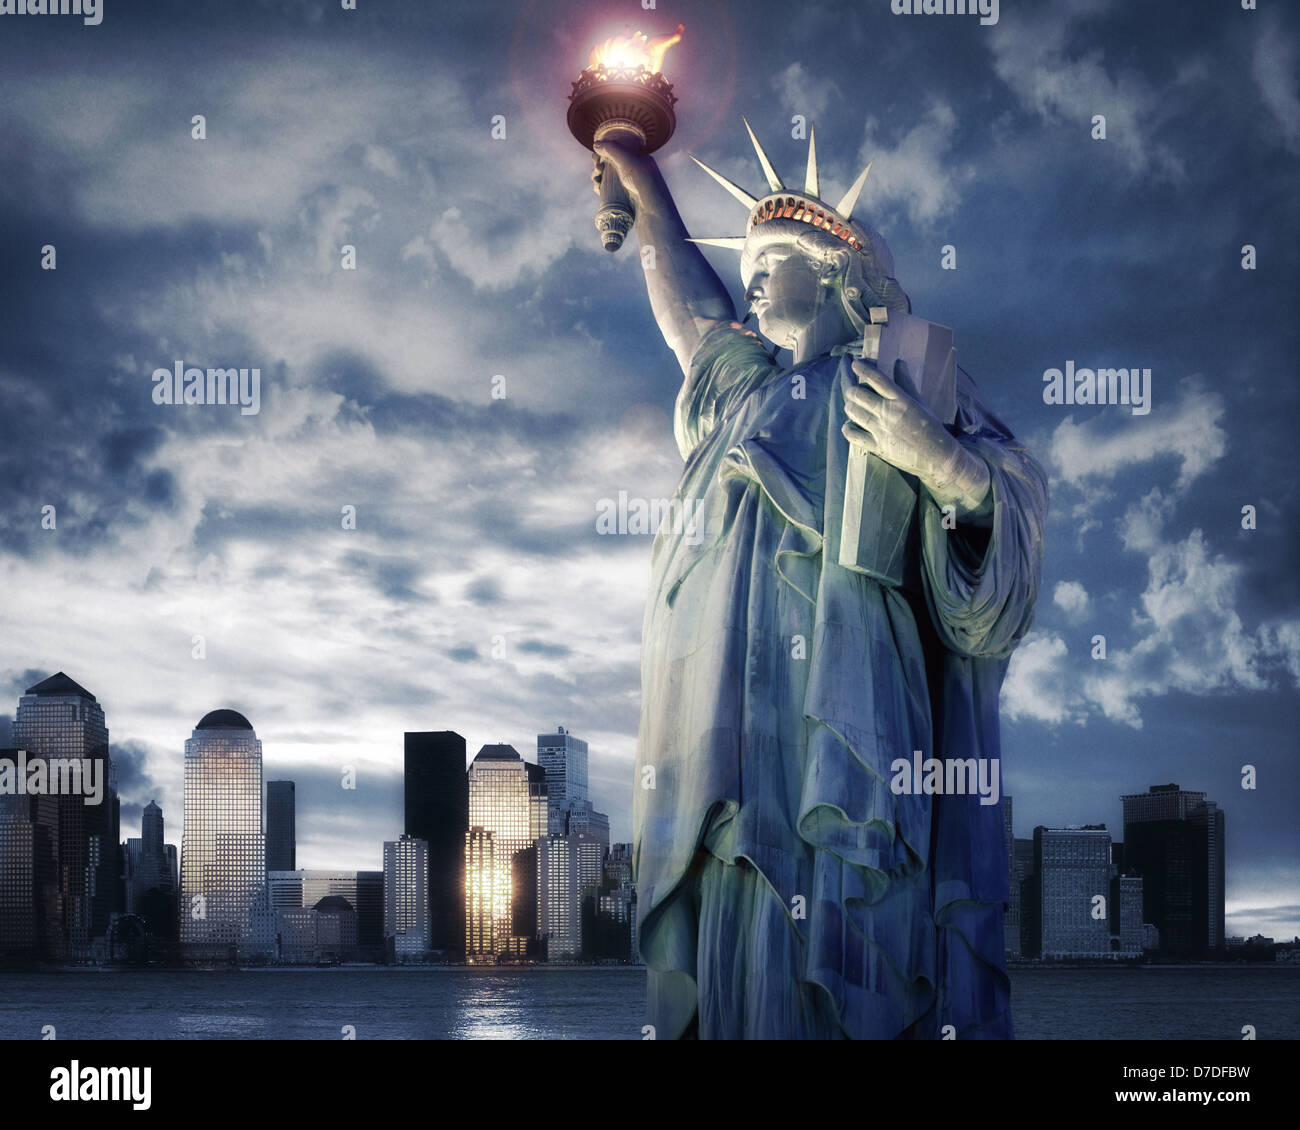 USA - NEW YORK: Travel Concept - Stock Image